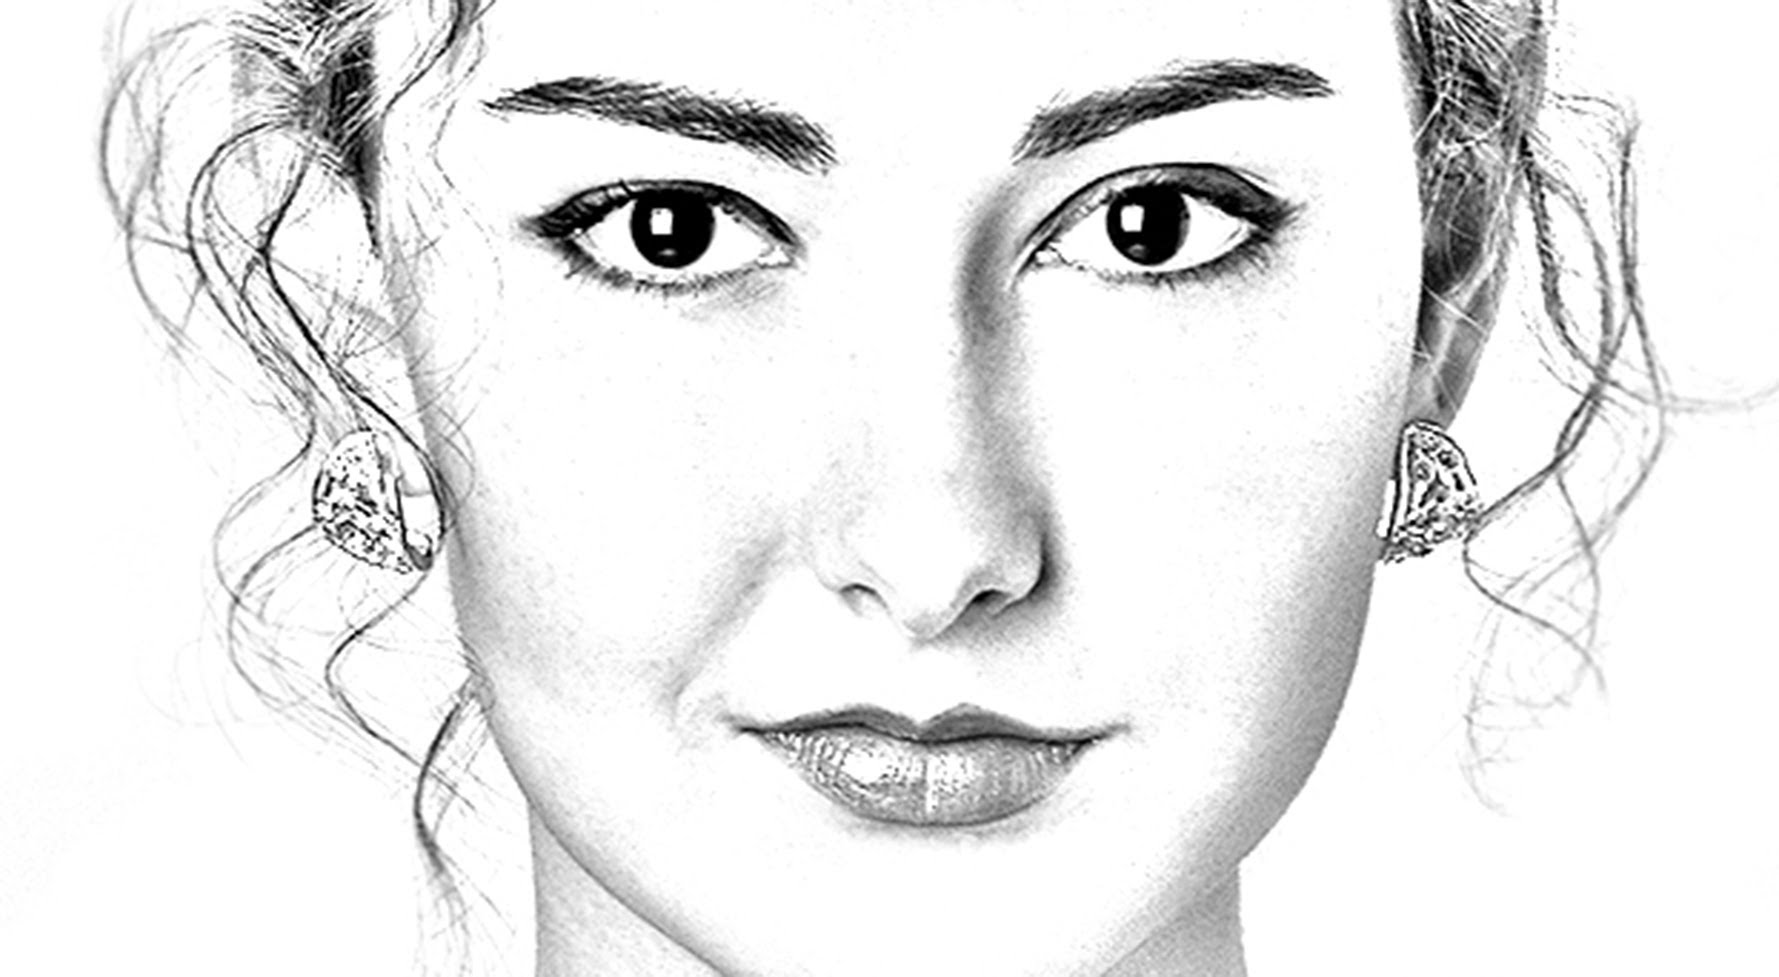 Photoshop Tutorial - Convert Photos into Pencil Drawings by Marty